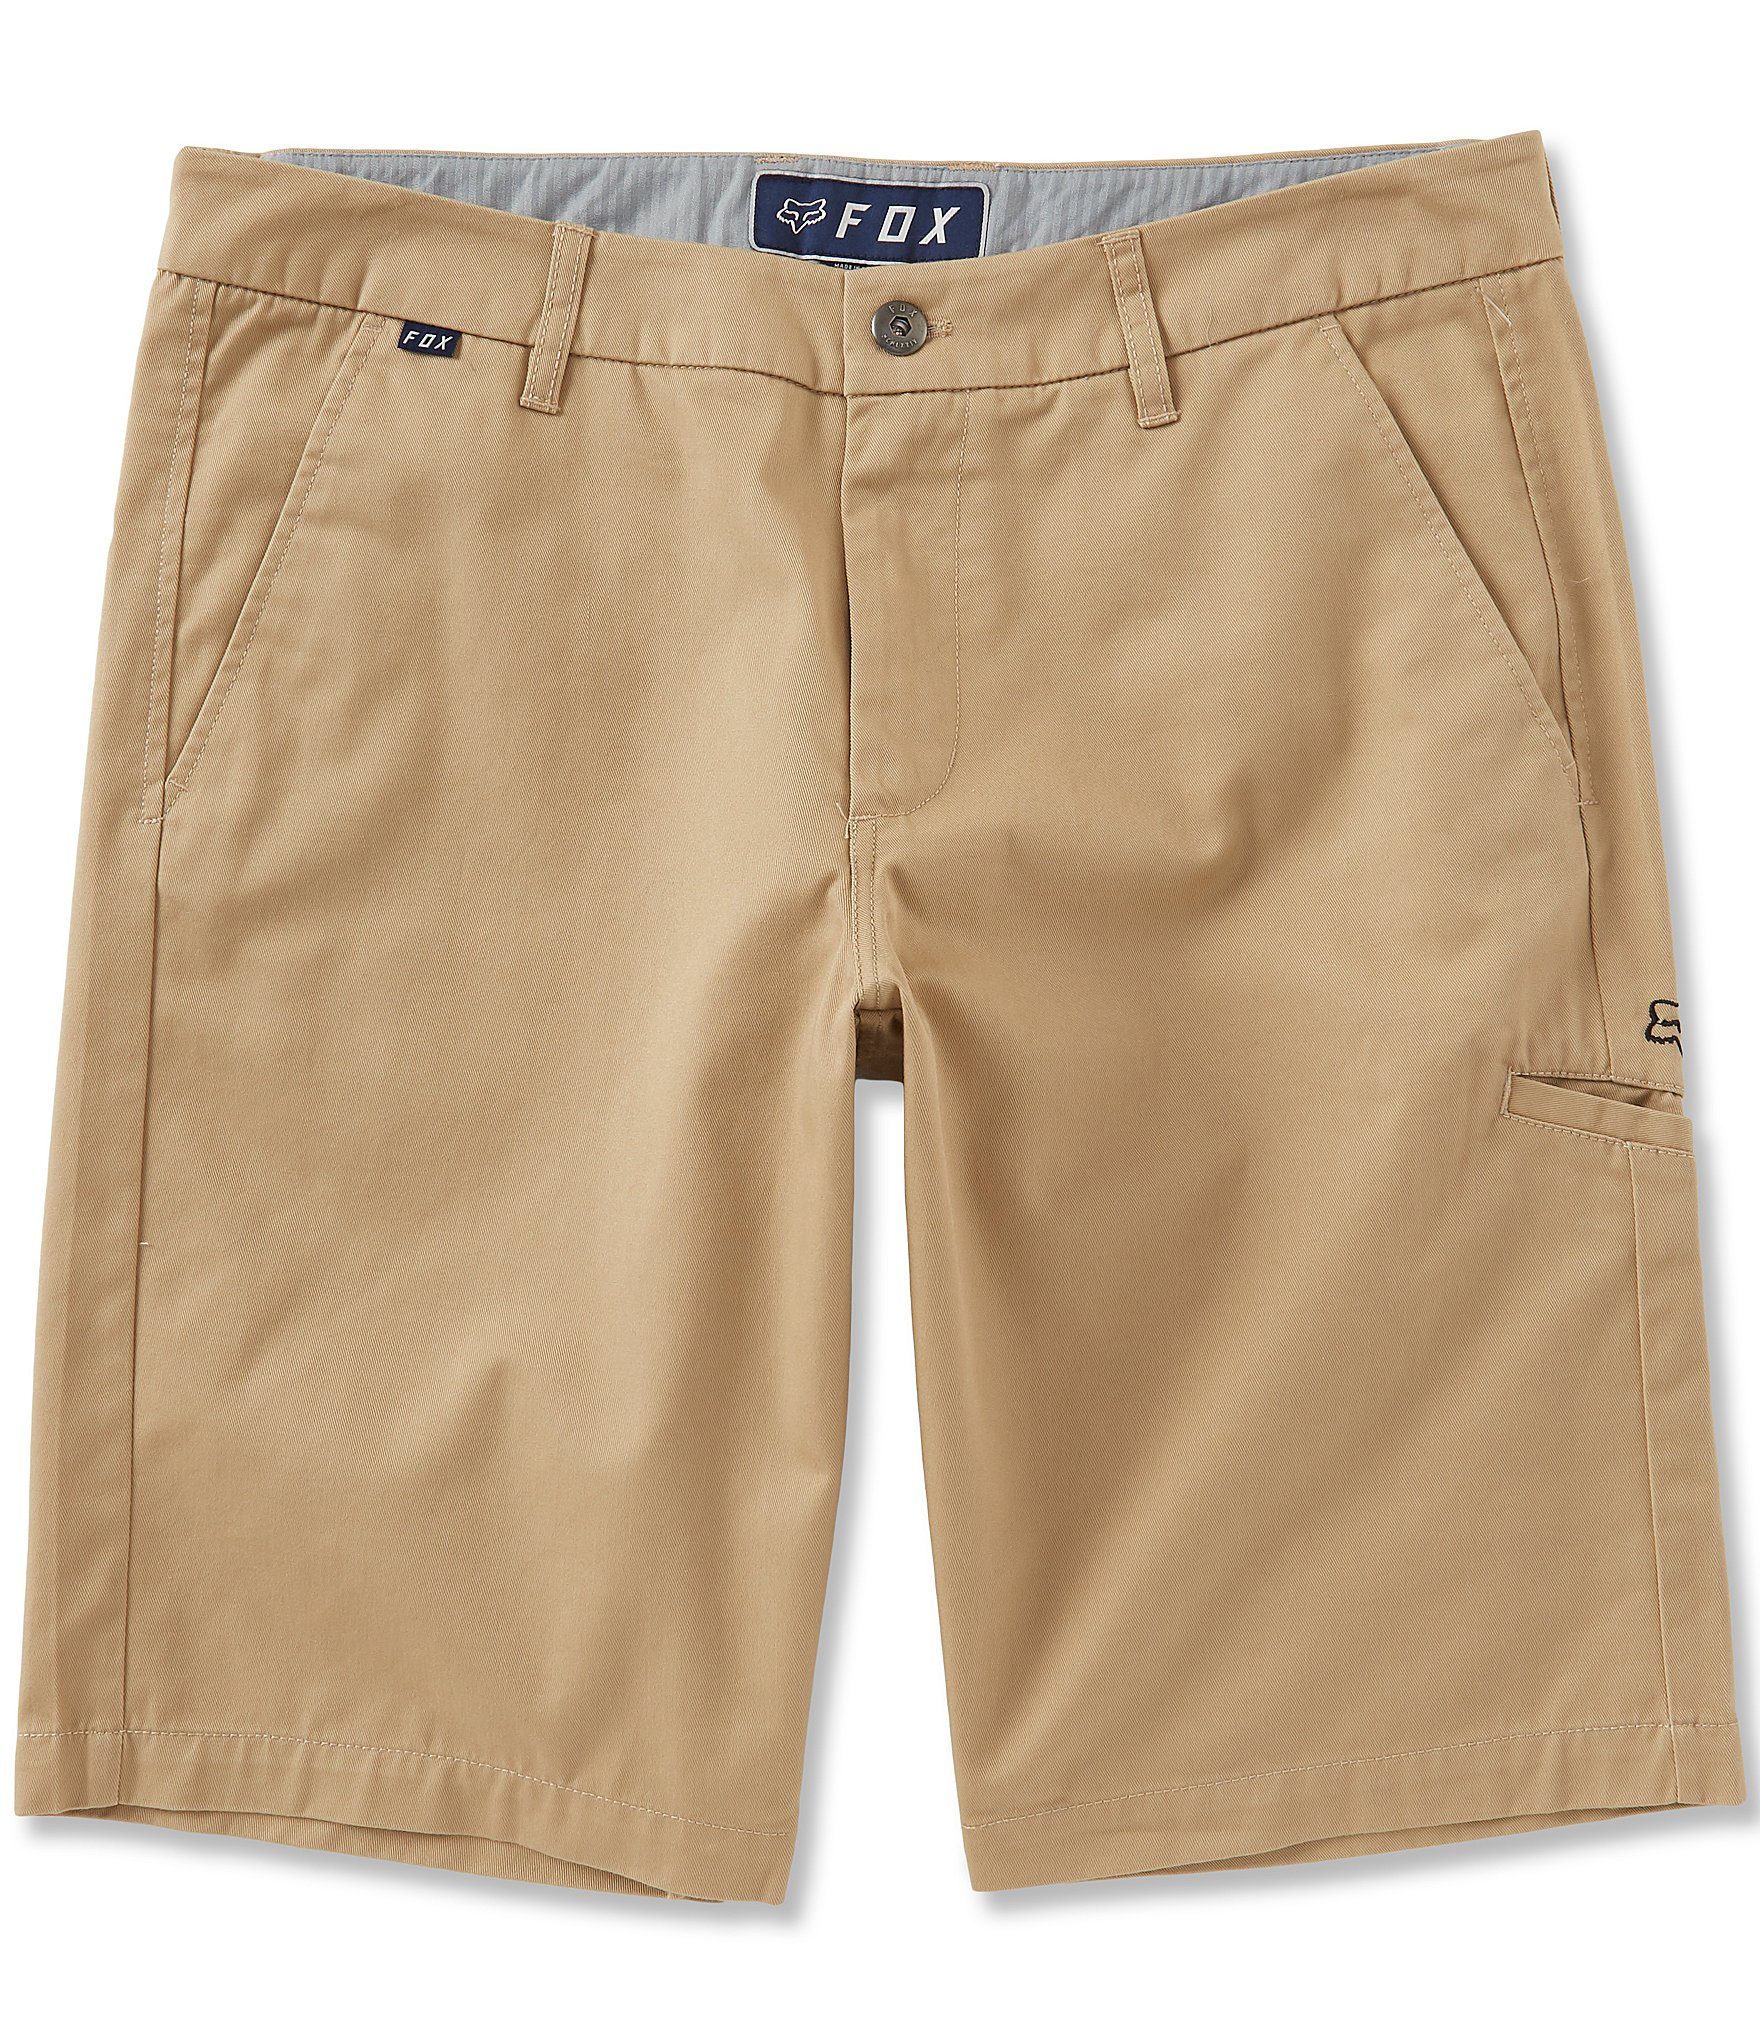 New Fox Slambozo Solid Cargo Shorts Dark Khaki